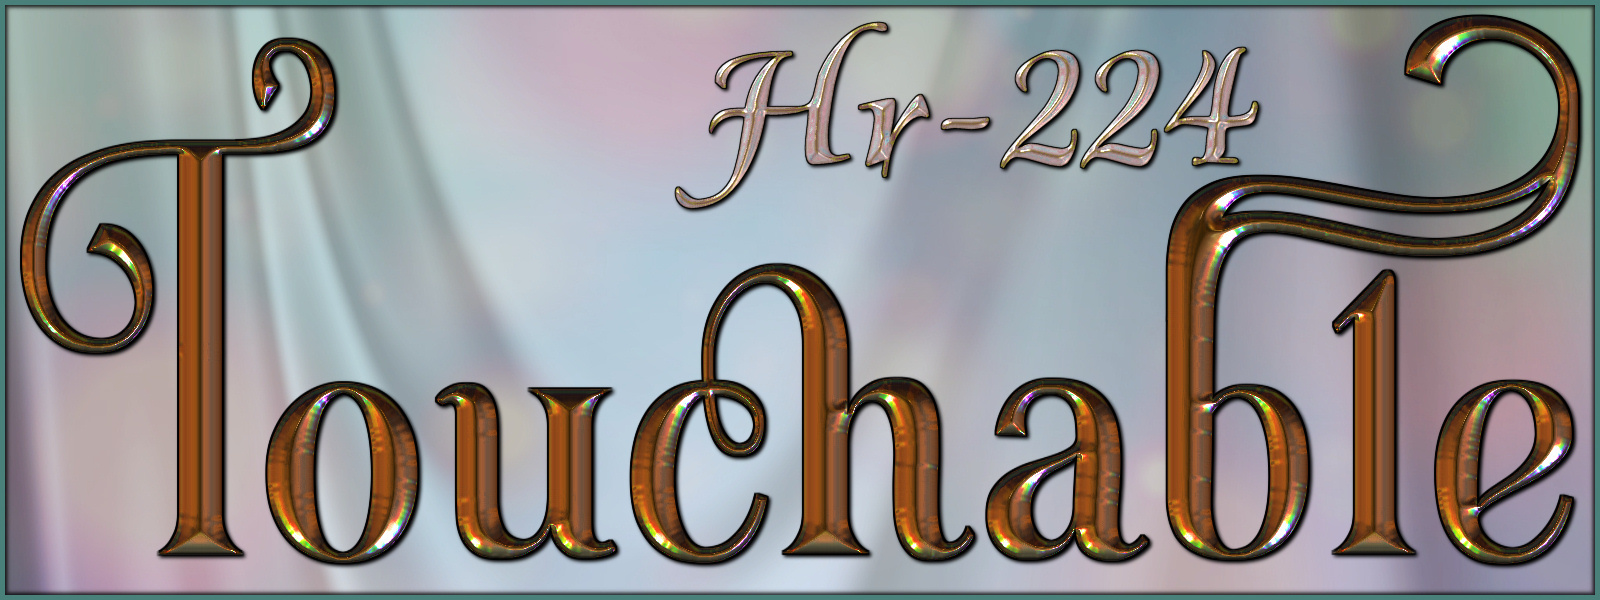 Touchable Hr-224